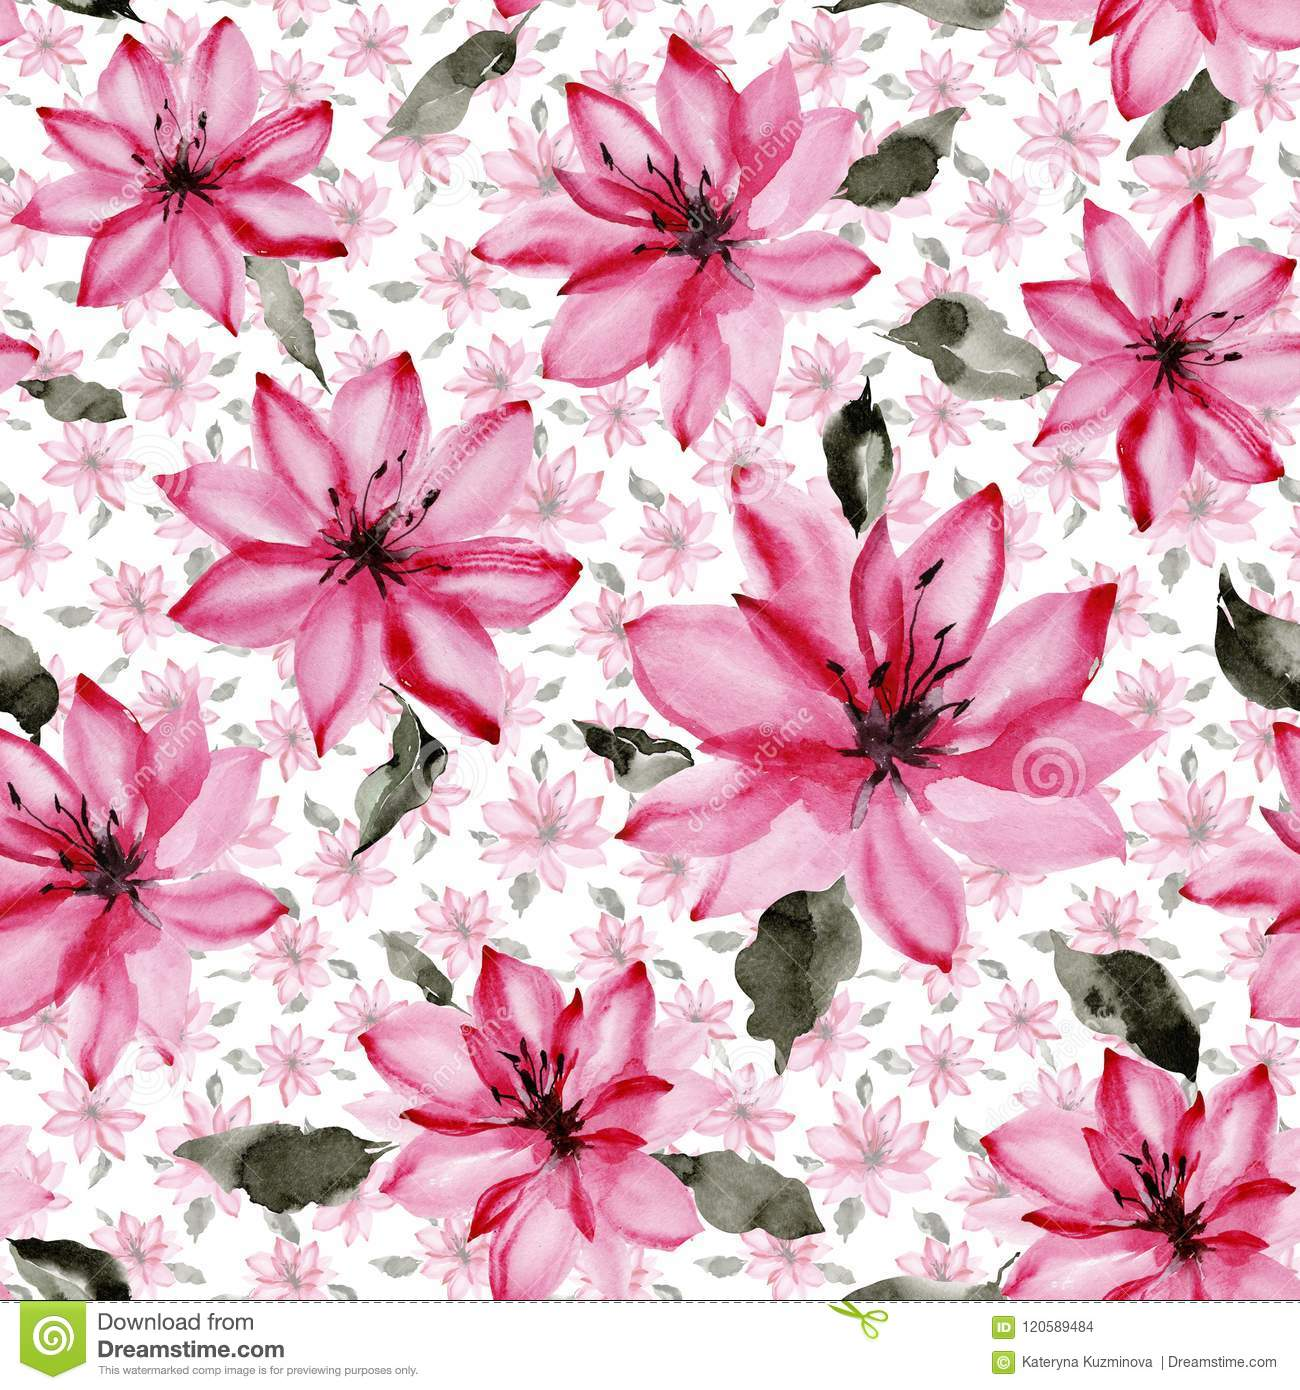 Beautiful pink flowers with leaves on white background. Seamless floral pattern. Watercolor painting.